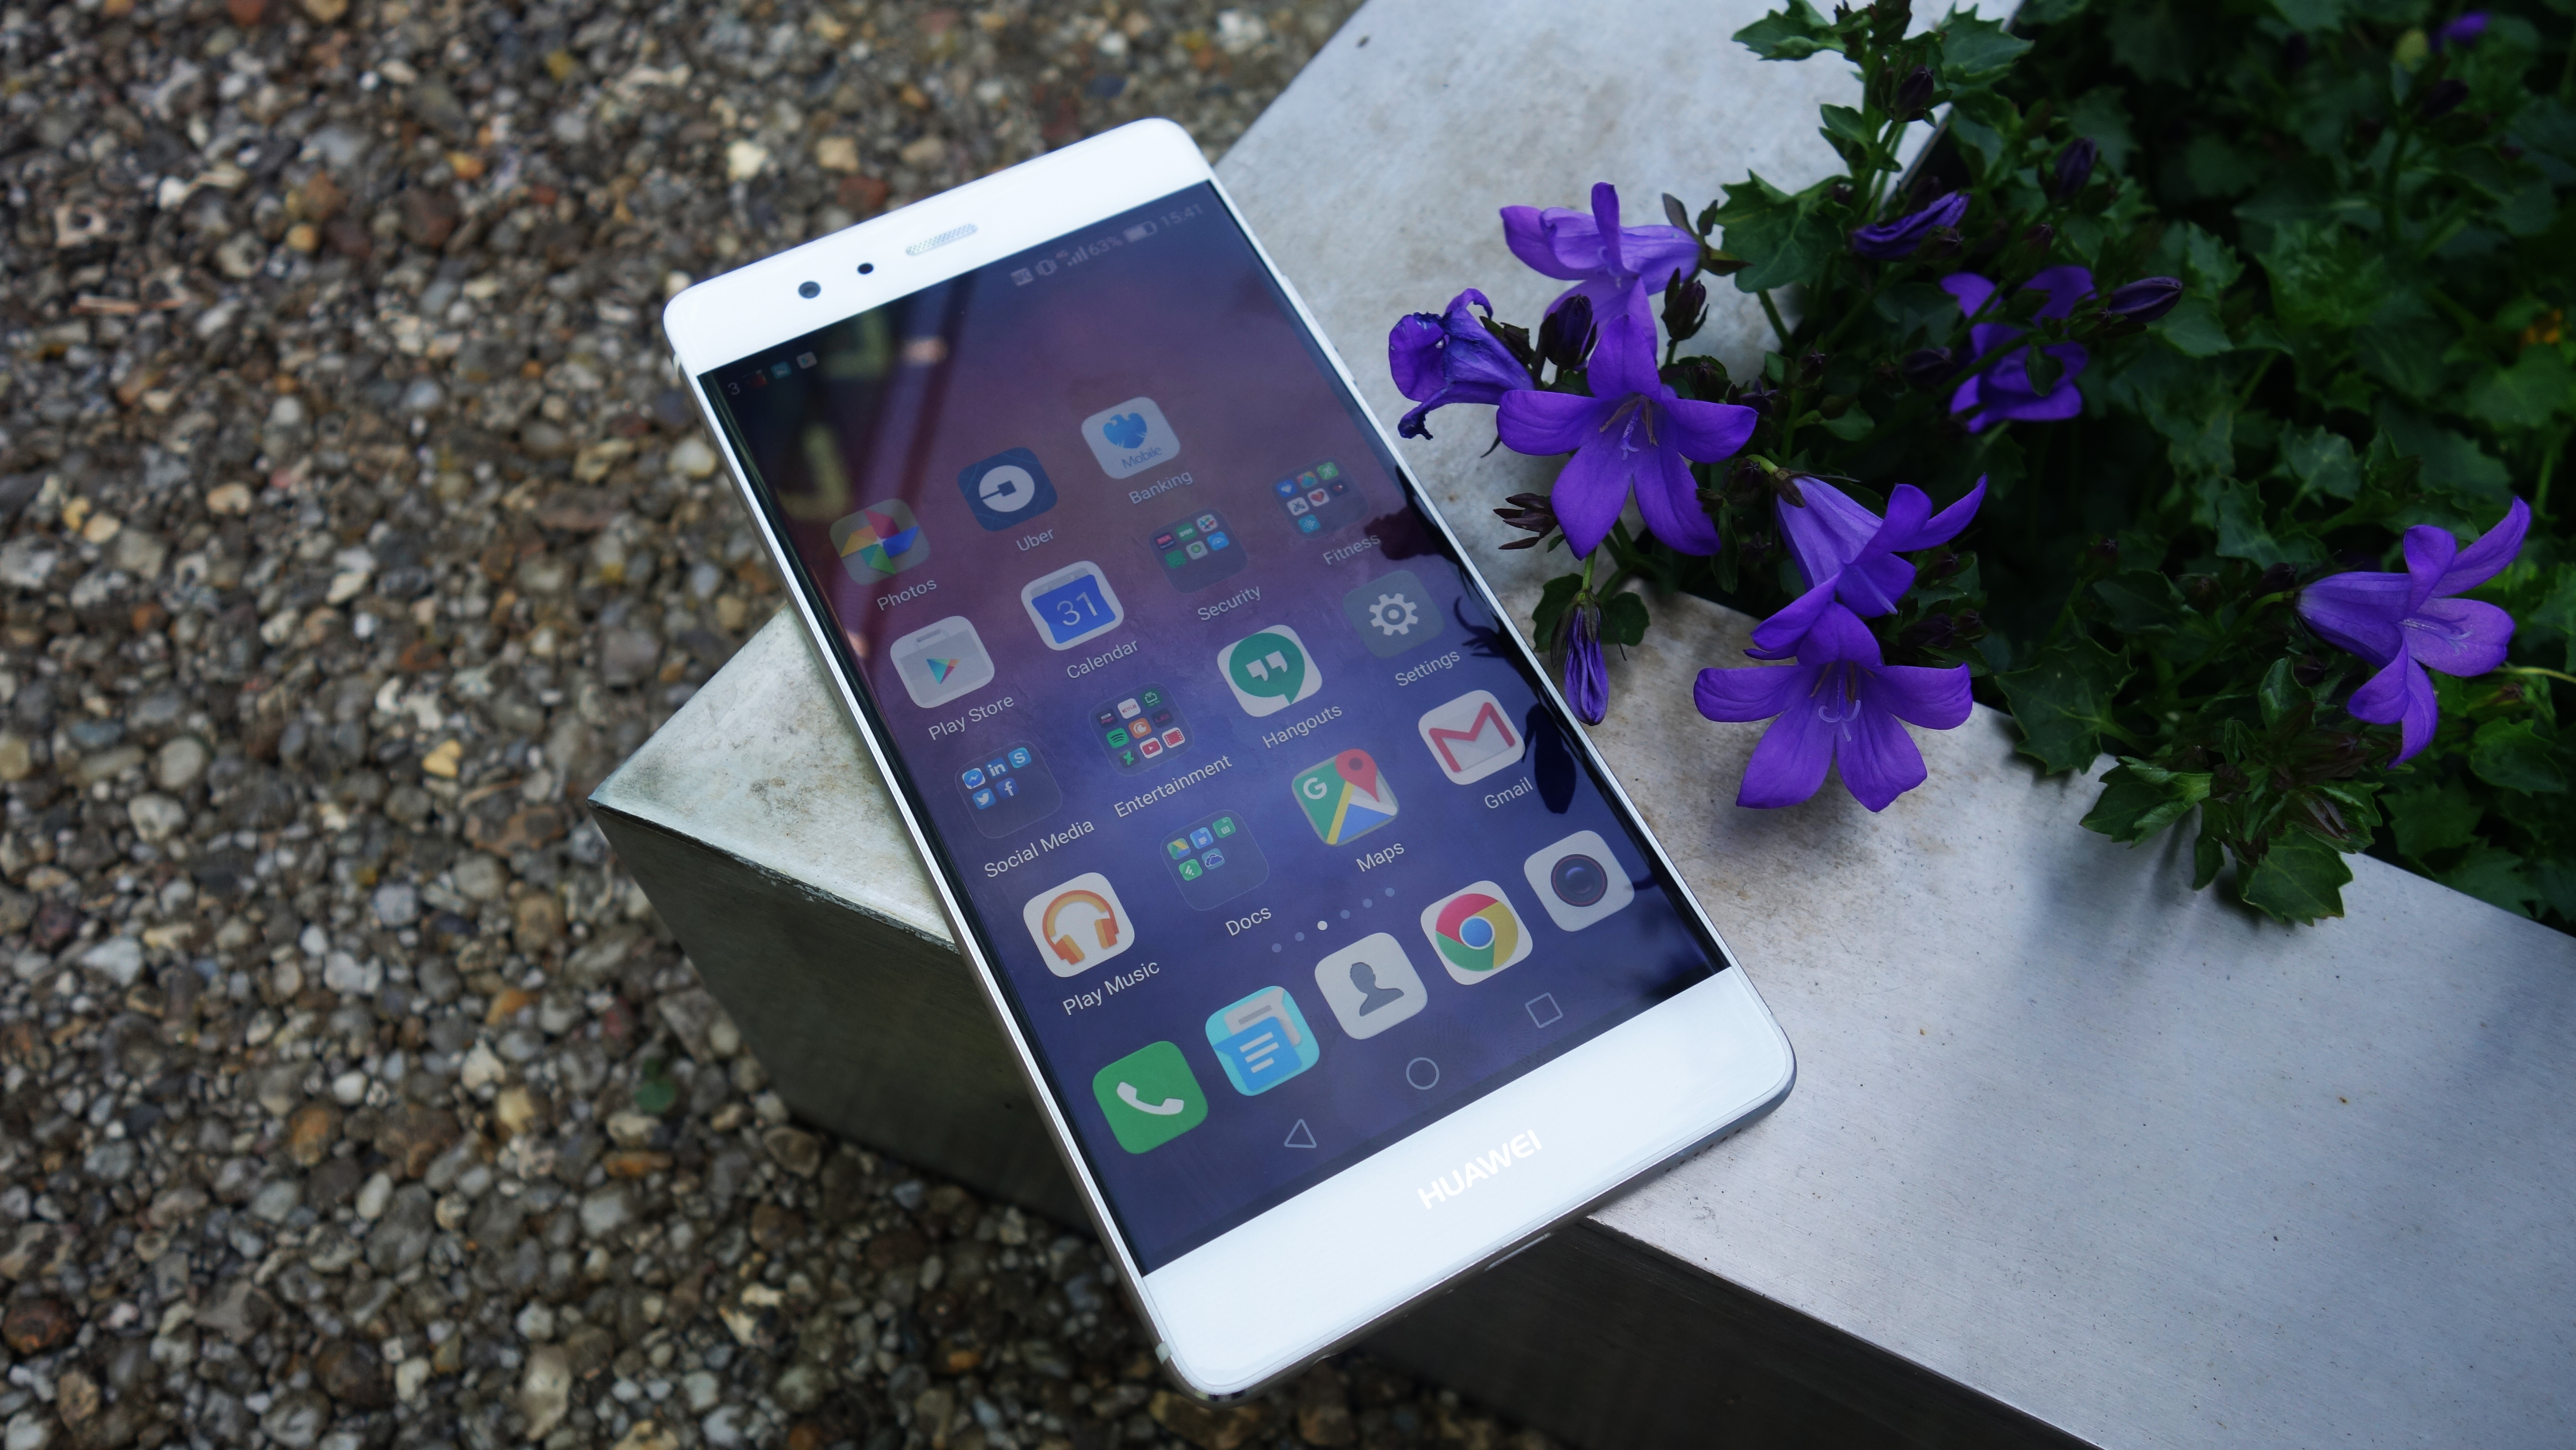 Huawei Cell Phones: Huawei P9 Review : Design, Display, Sofware